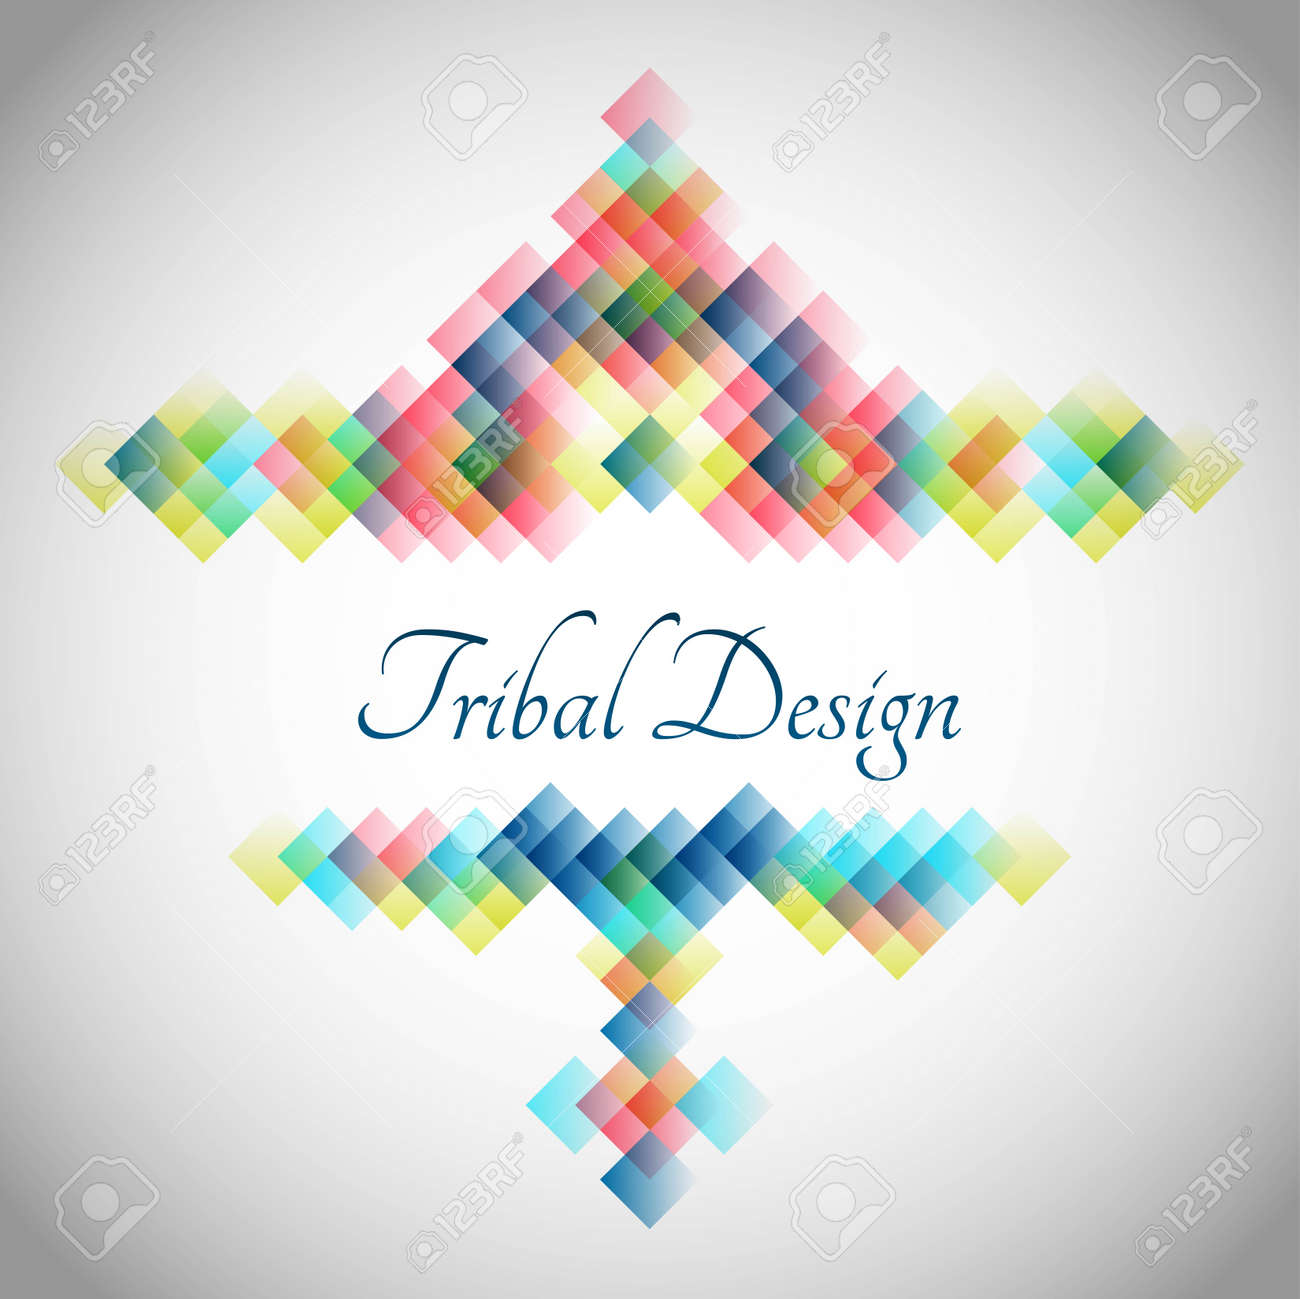 Abstract background with bright abstract geometric element for